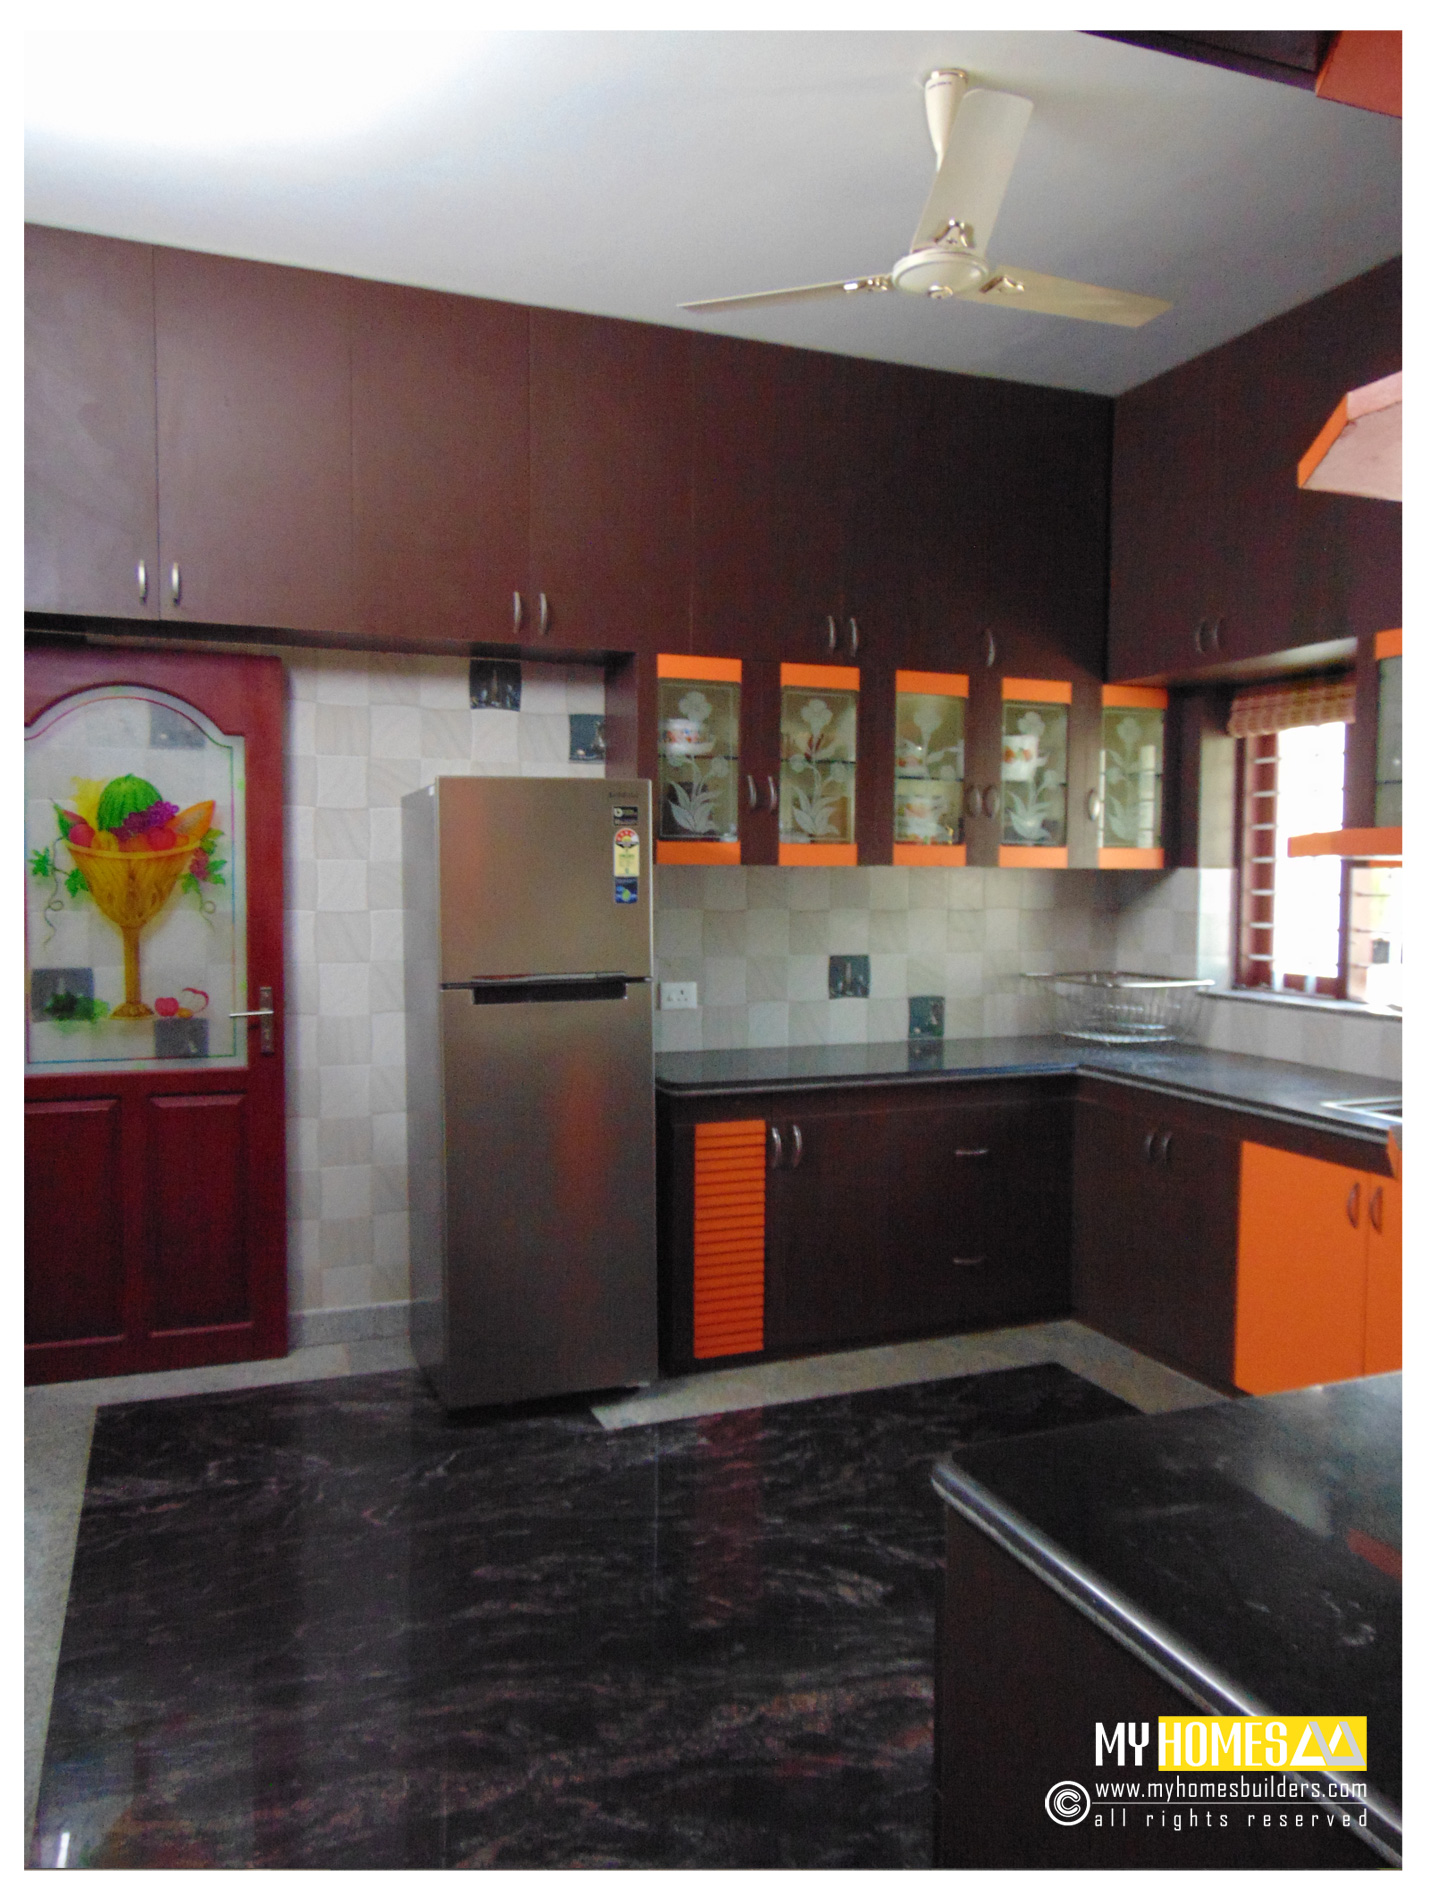 Kerala kitchen designs idea in modular style for house in india - Home kitchen design ideas ...